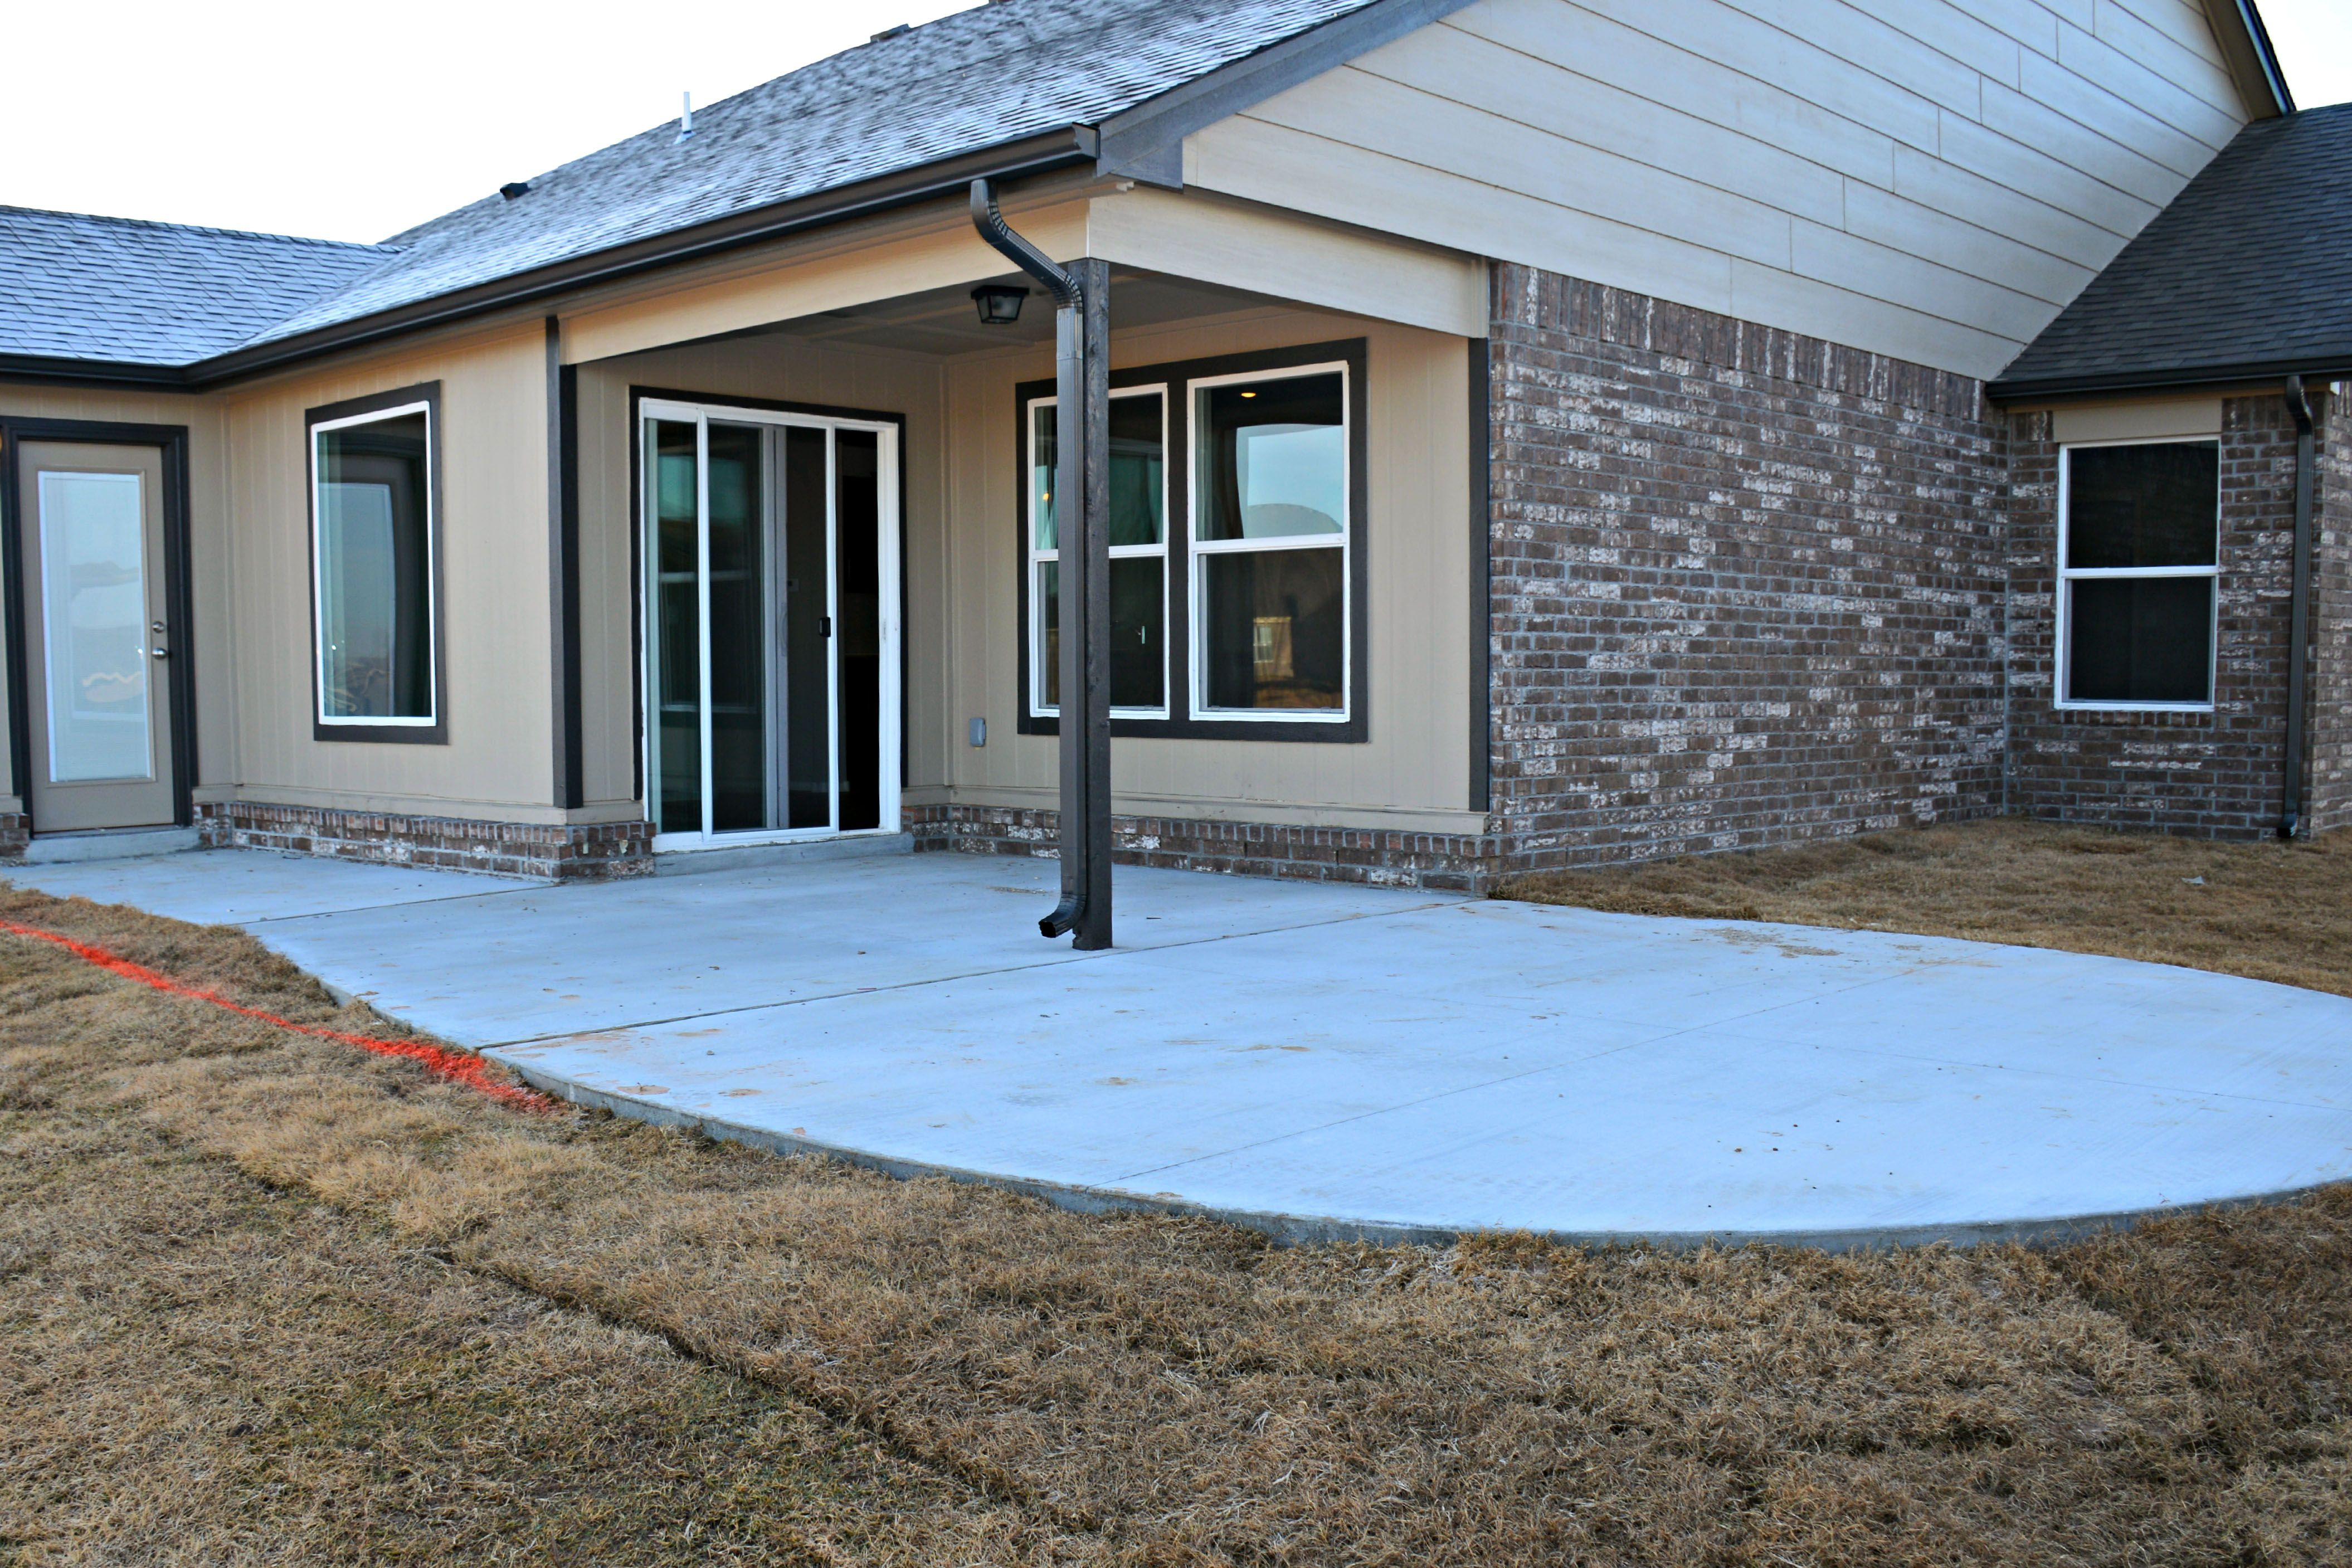 Simmons Homes Concrete Patio Extension Option. Outdoor Living. New Homes  Tulsa.